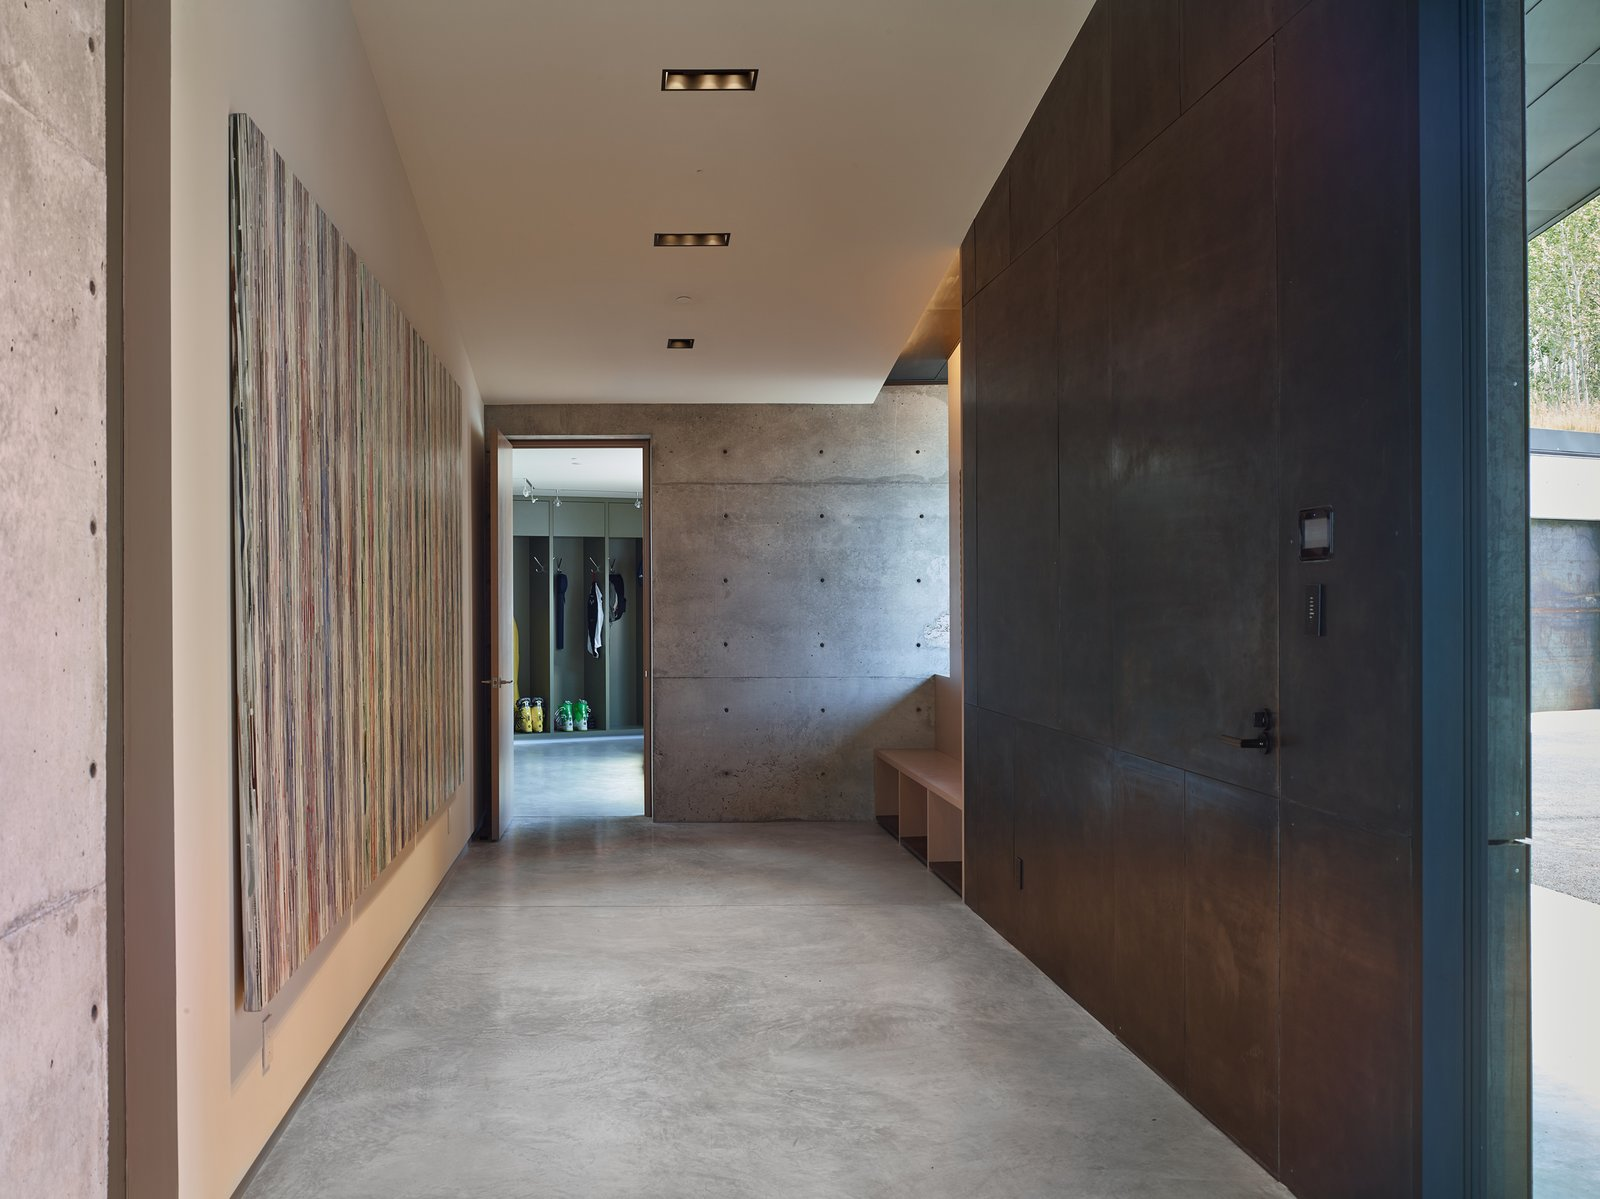 The client possessed a collection of art to be placed in the home, which was meticulously considered in the design process. Drywall was used exclusively and deliberately to hang the artwork to each piece's necessary measurement.  Tagged: Hallway and Concrete Floor.  Wyoming Residence by Abramson Teiger Architects